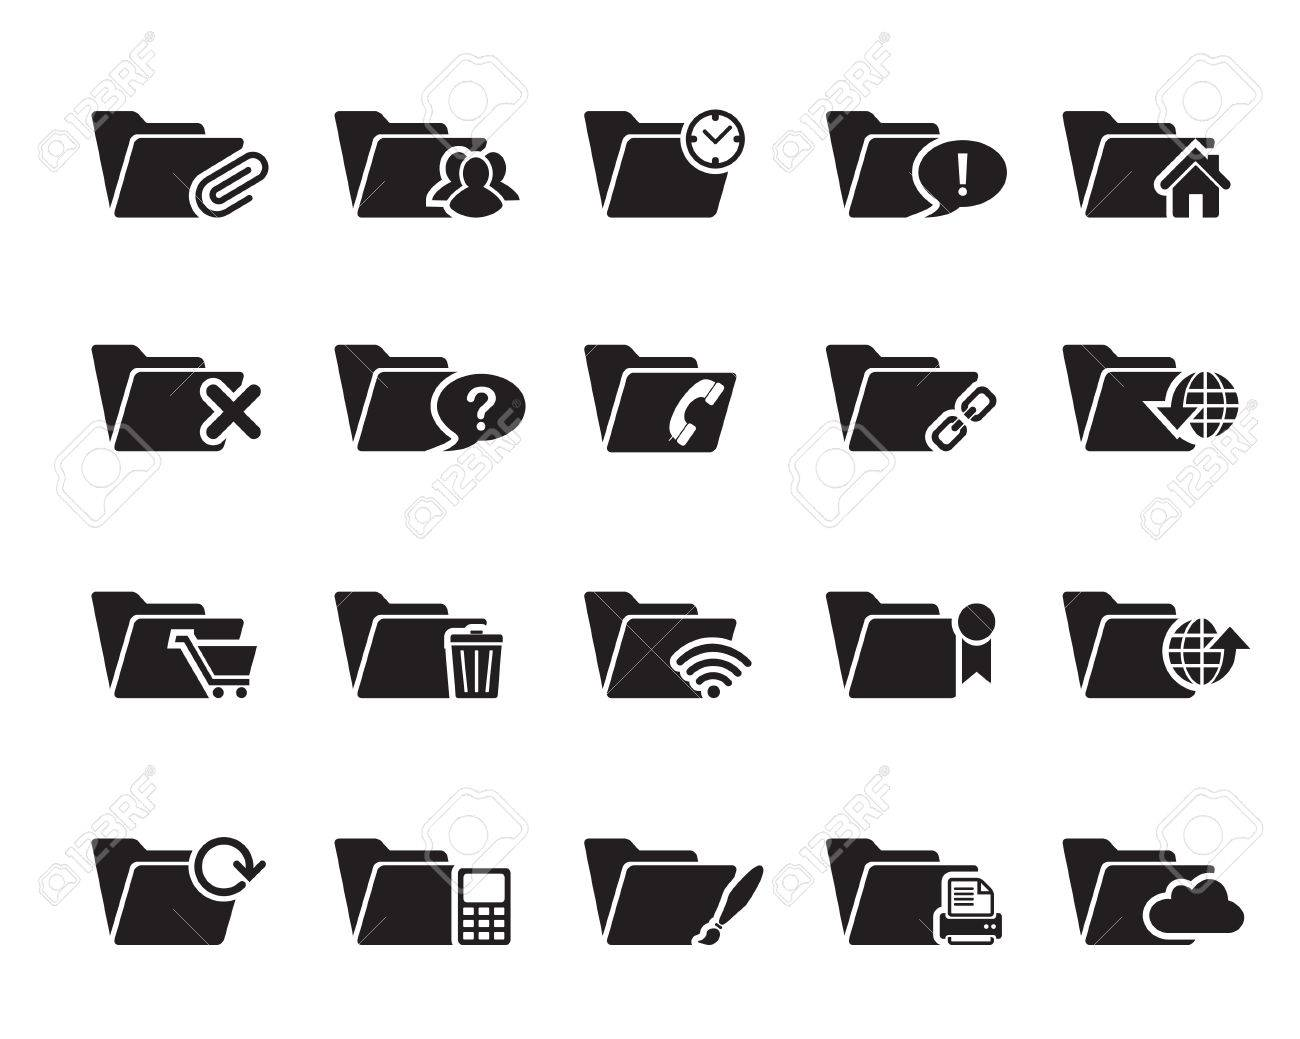 File and Folder Icons vector illustrator, available in jpeg and